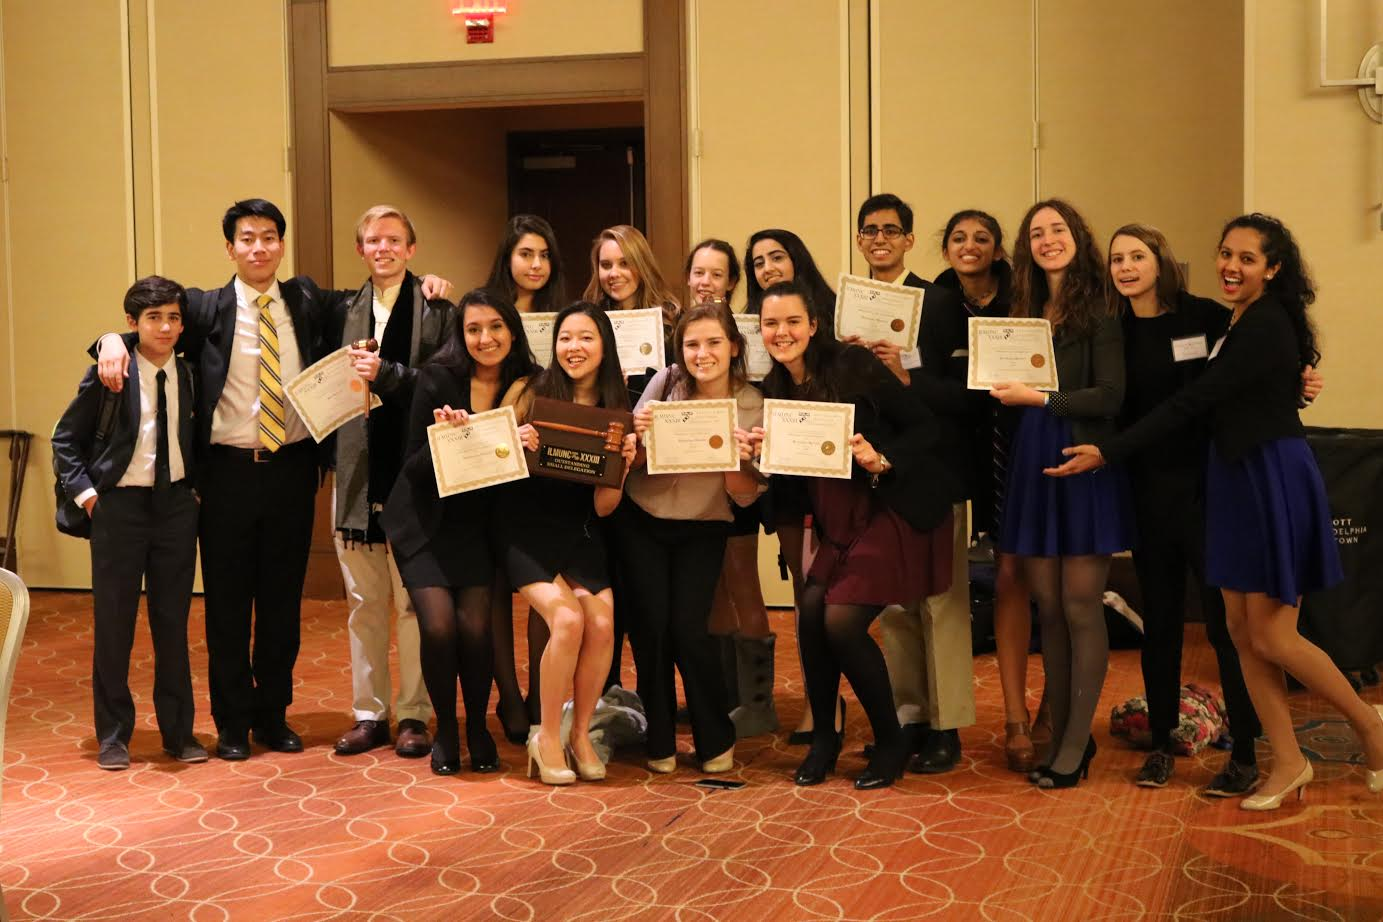 The 16 delegates who represented McLean MUN at the Ivy League Model United Nations Conference pose after the awards ceremony. (Photo courtesy of McLean MUN)